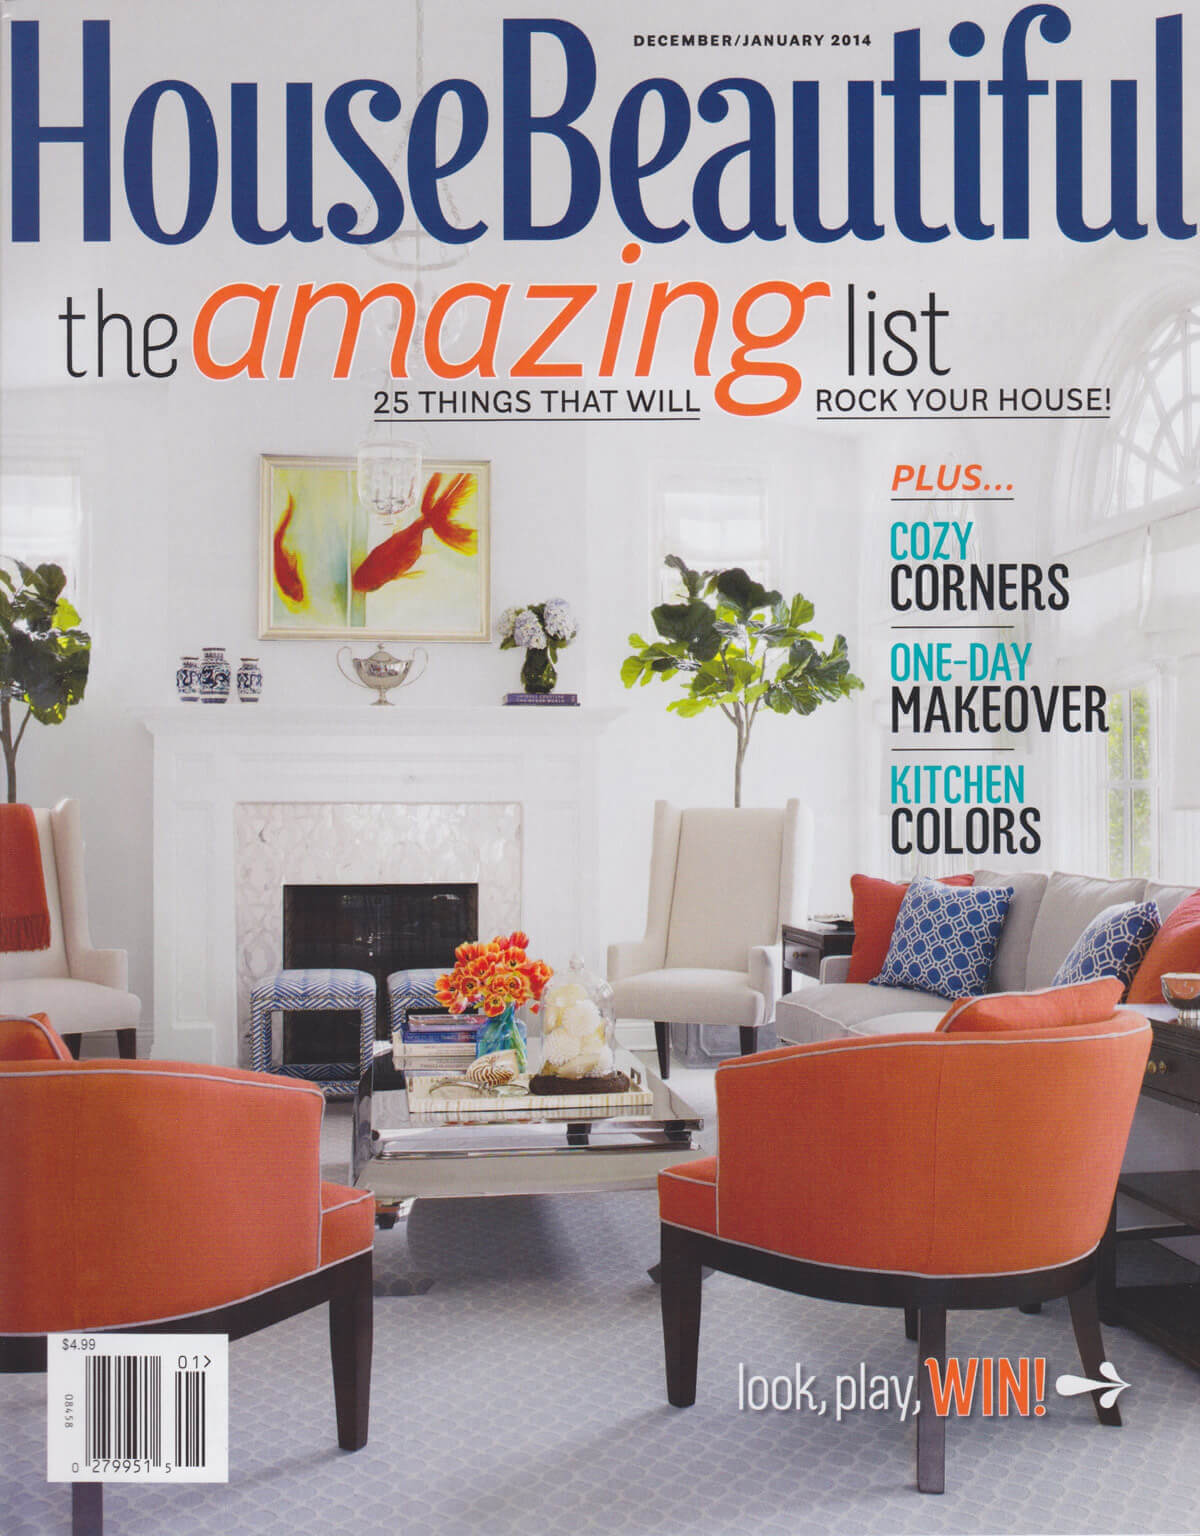 House Beautiful Magazine December January 2014 Hydrosystems